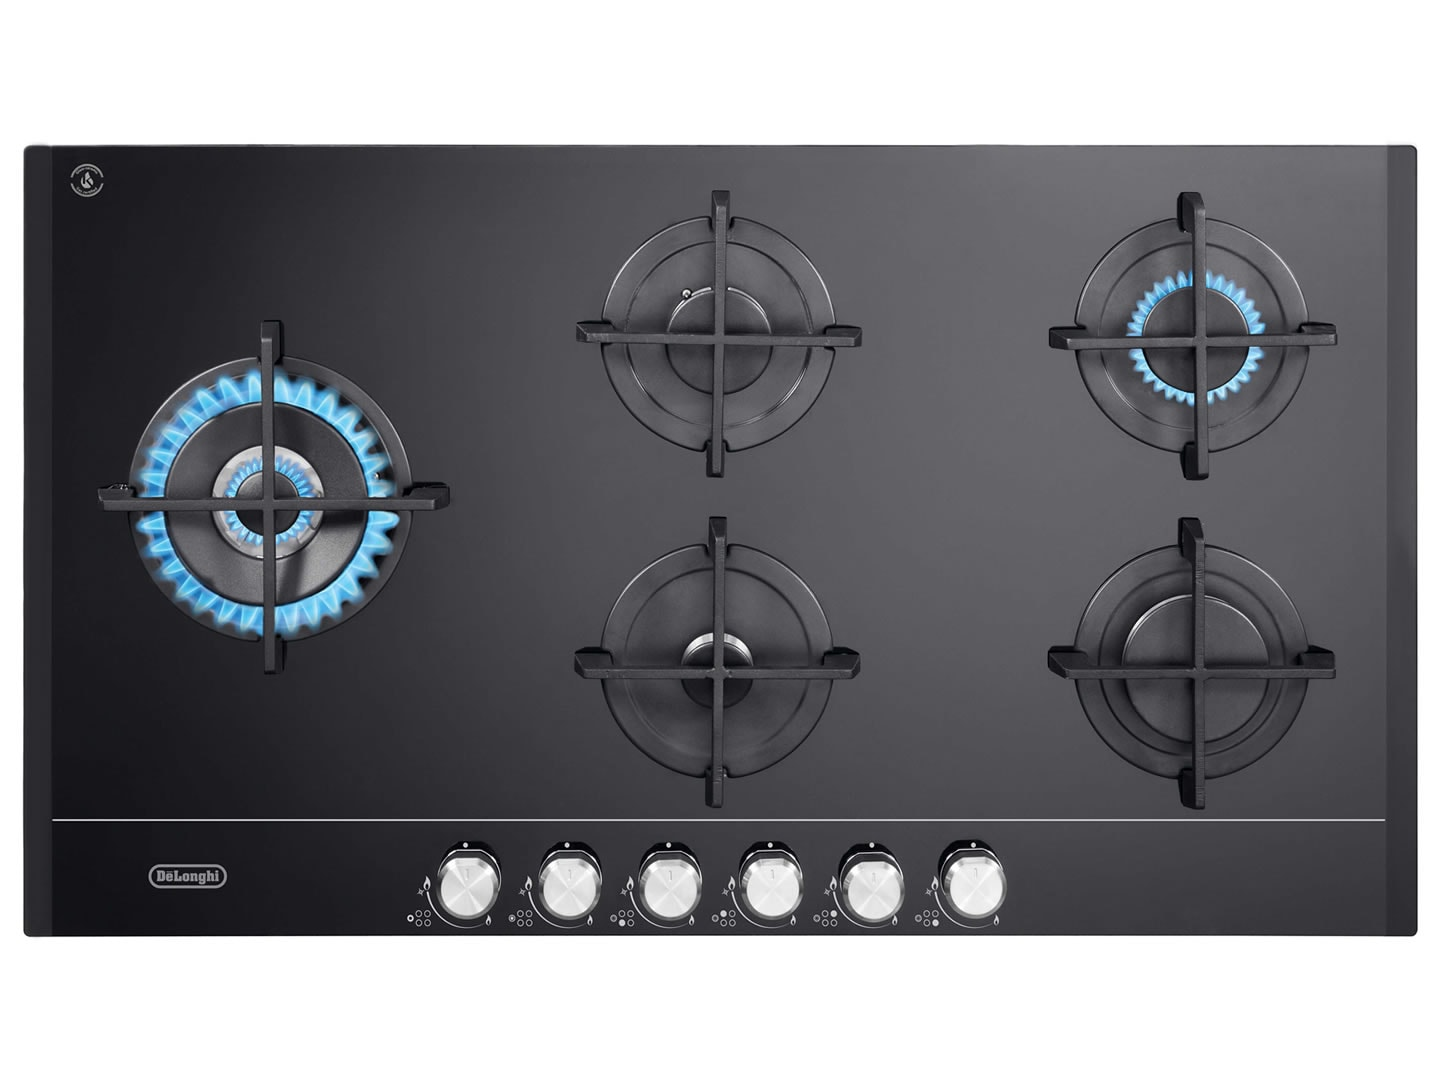 DeLonghi 90cm 5 Burner Black Glass Gas Cooktop DEGHBG90